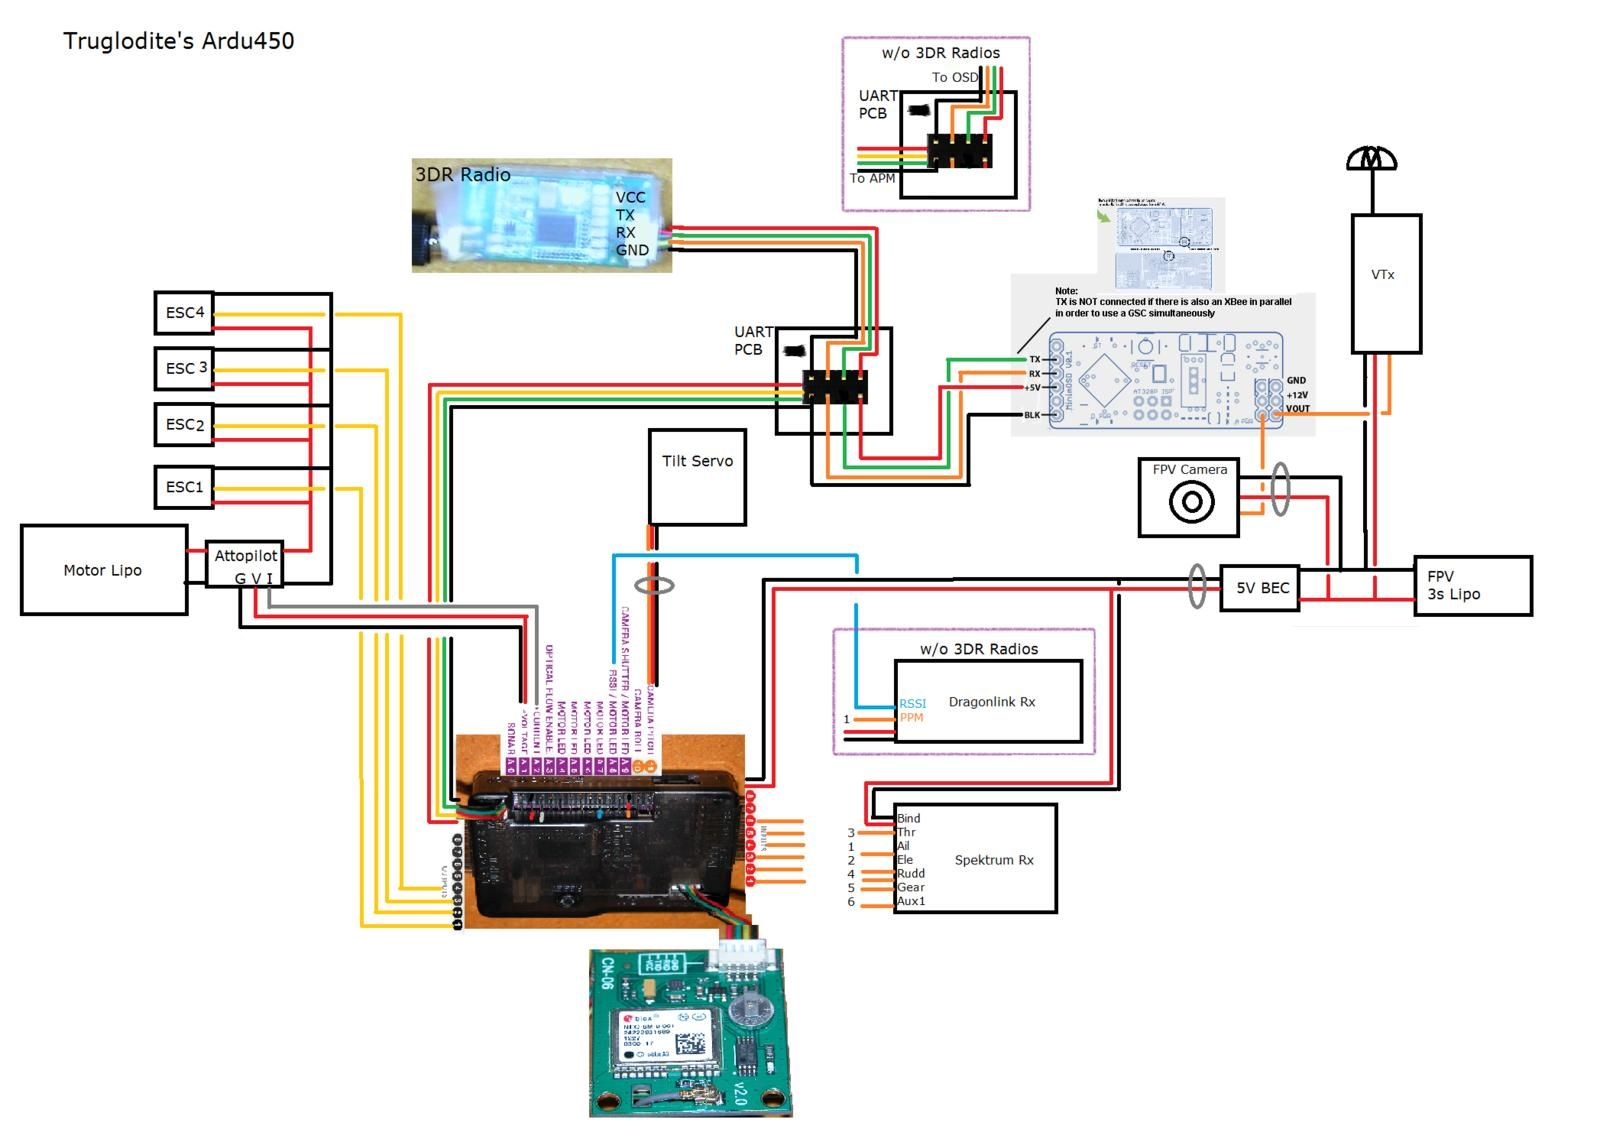 357d395e54b7a9308b5243aa77b4d707 apm 2 8 google search arducopter pinterest google search 3Dr APM 2.6 Wiring-Diagram at aneh.co